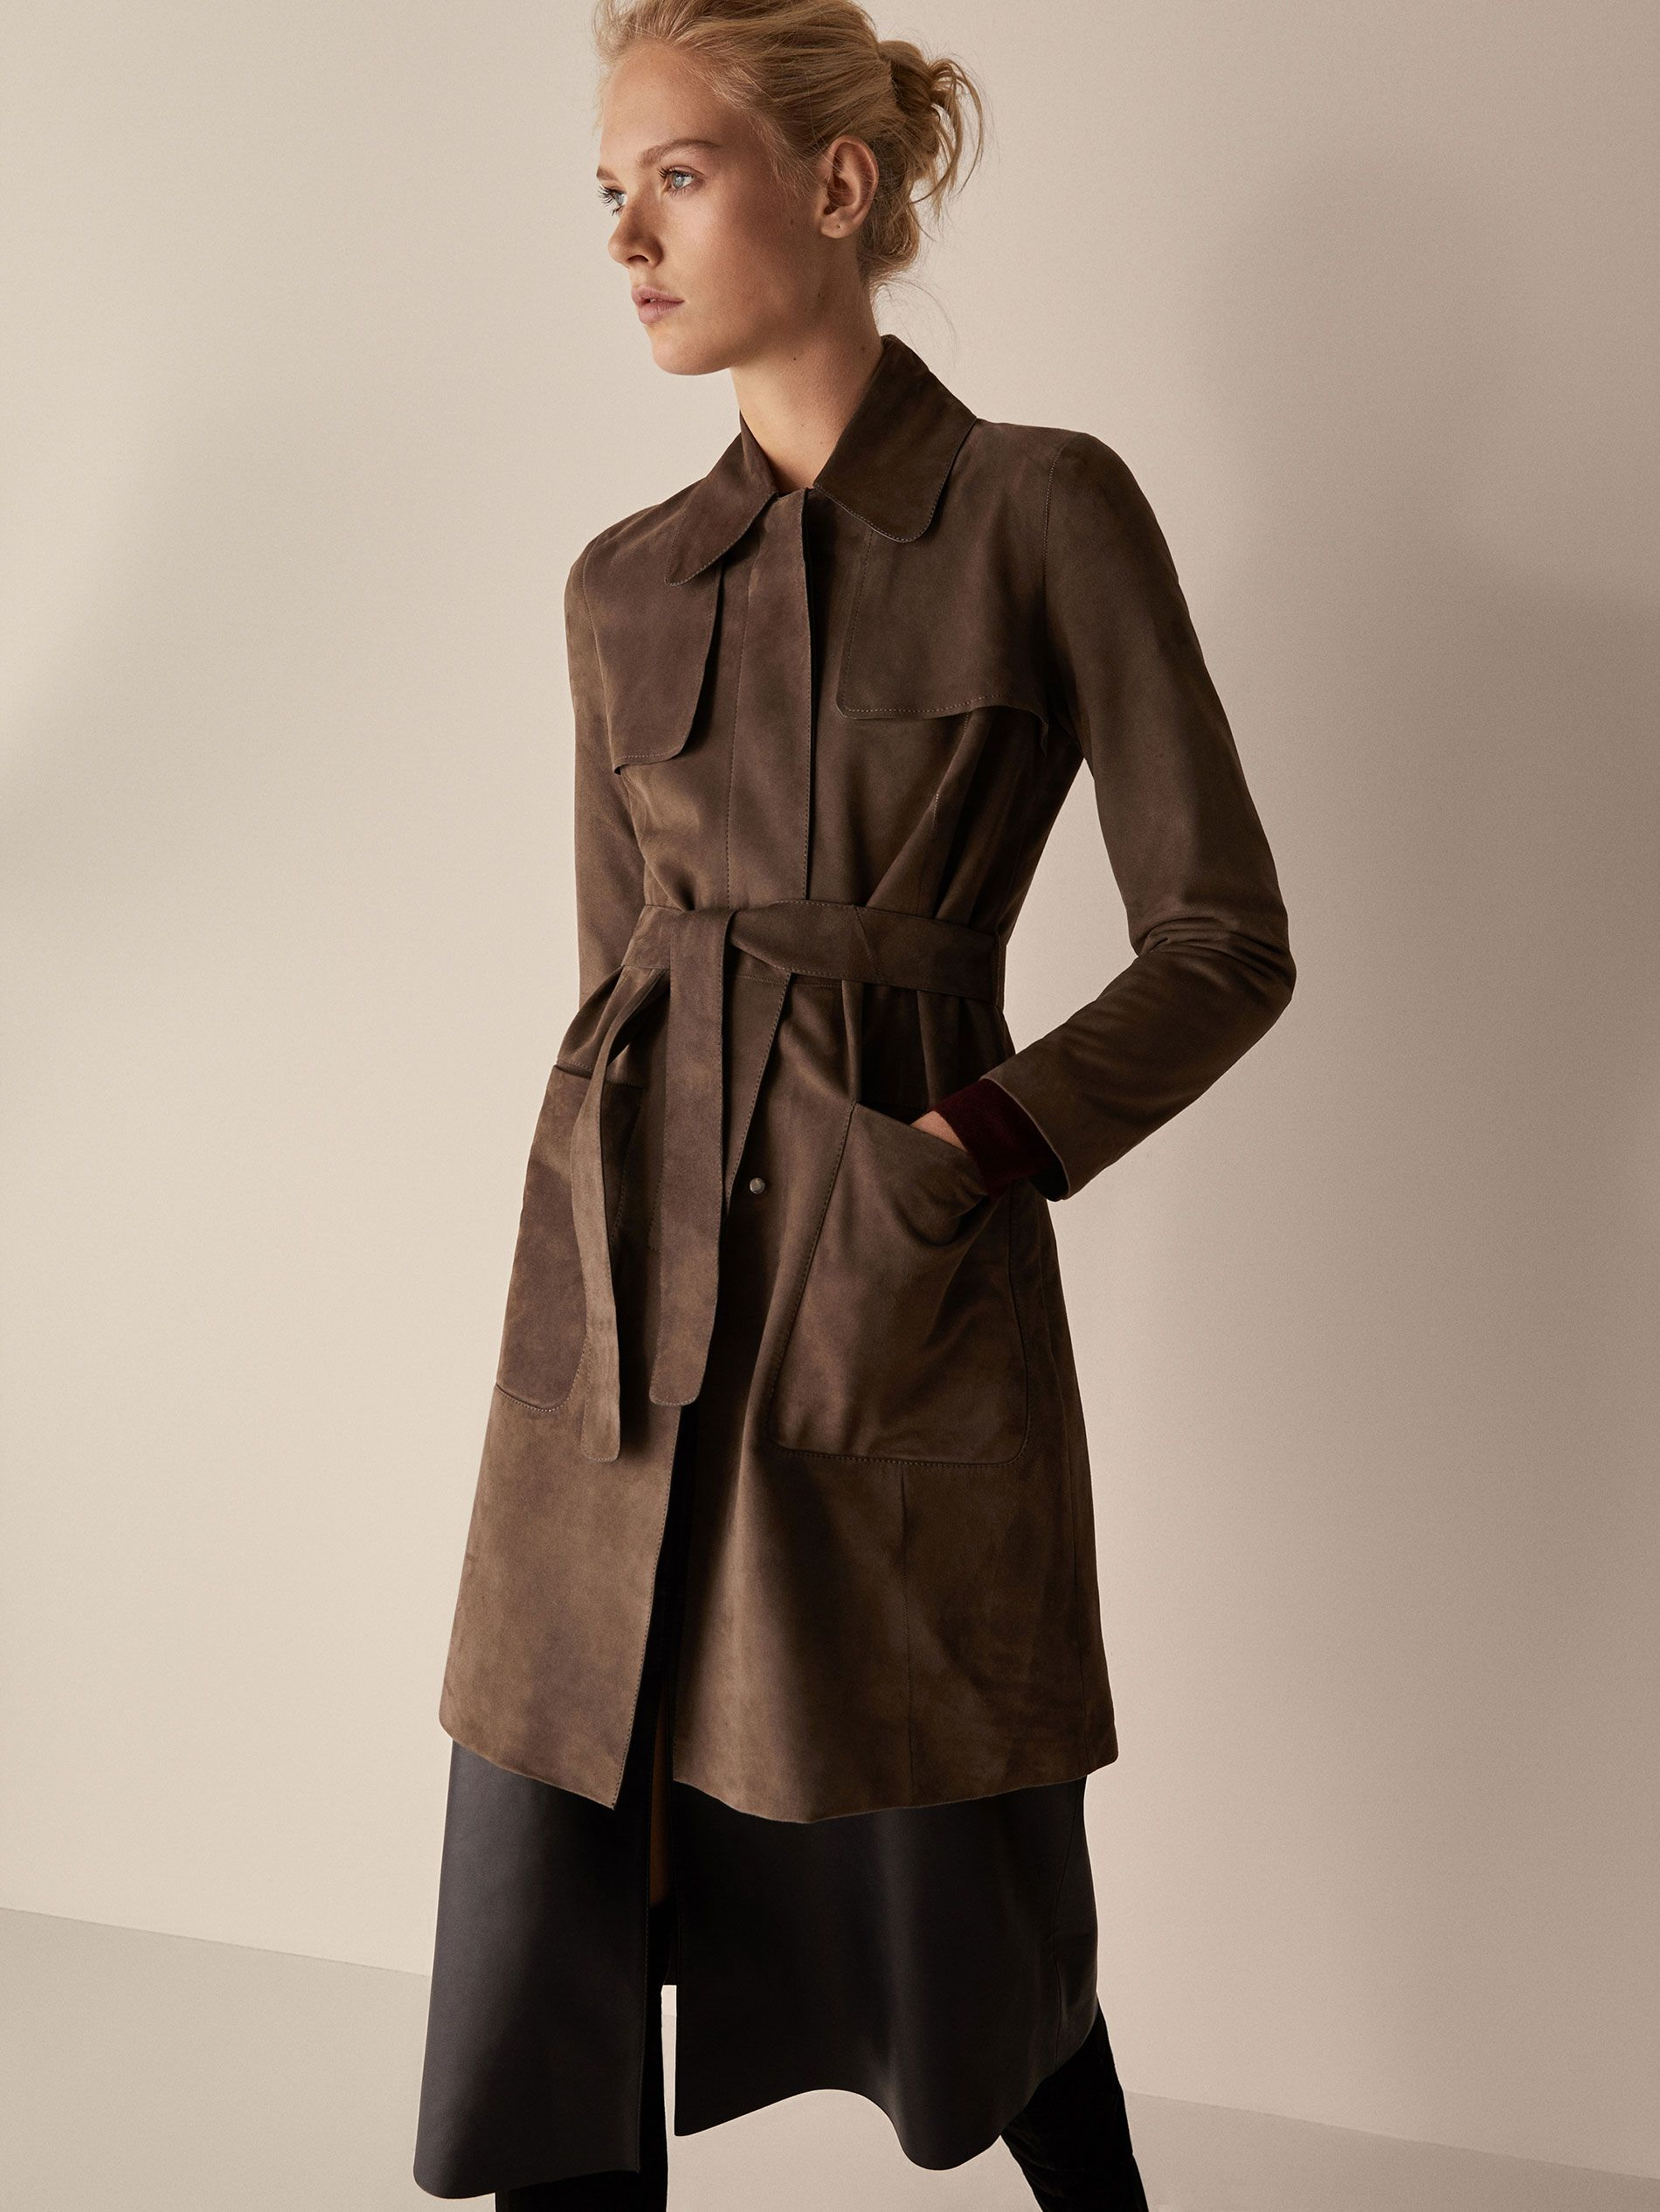 Fall Winter 2017 Women S Suede Trench Coat With Belt Detail At Massimo Dutti For 299 Effortless Elegance Suede Trench Coat Leather Outfits Women Trench Coat